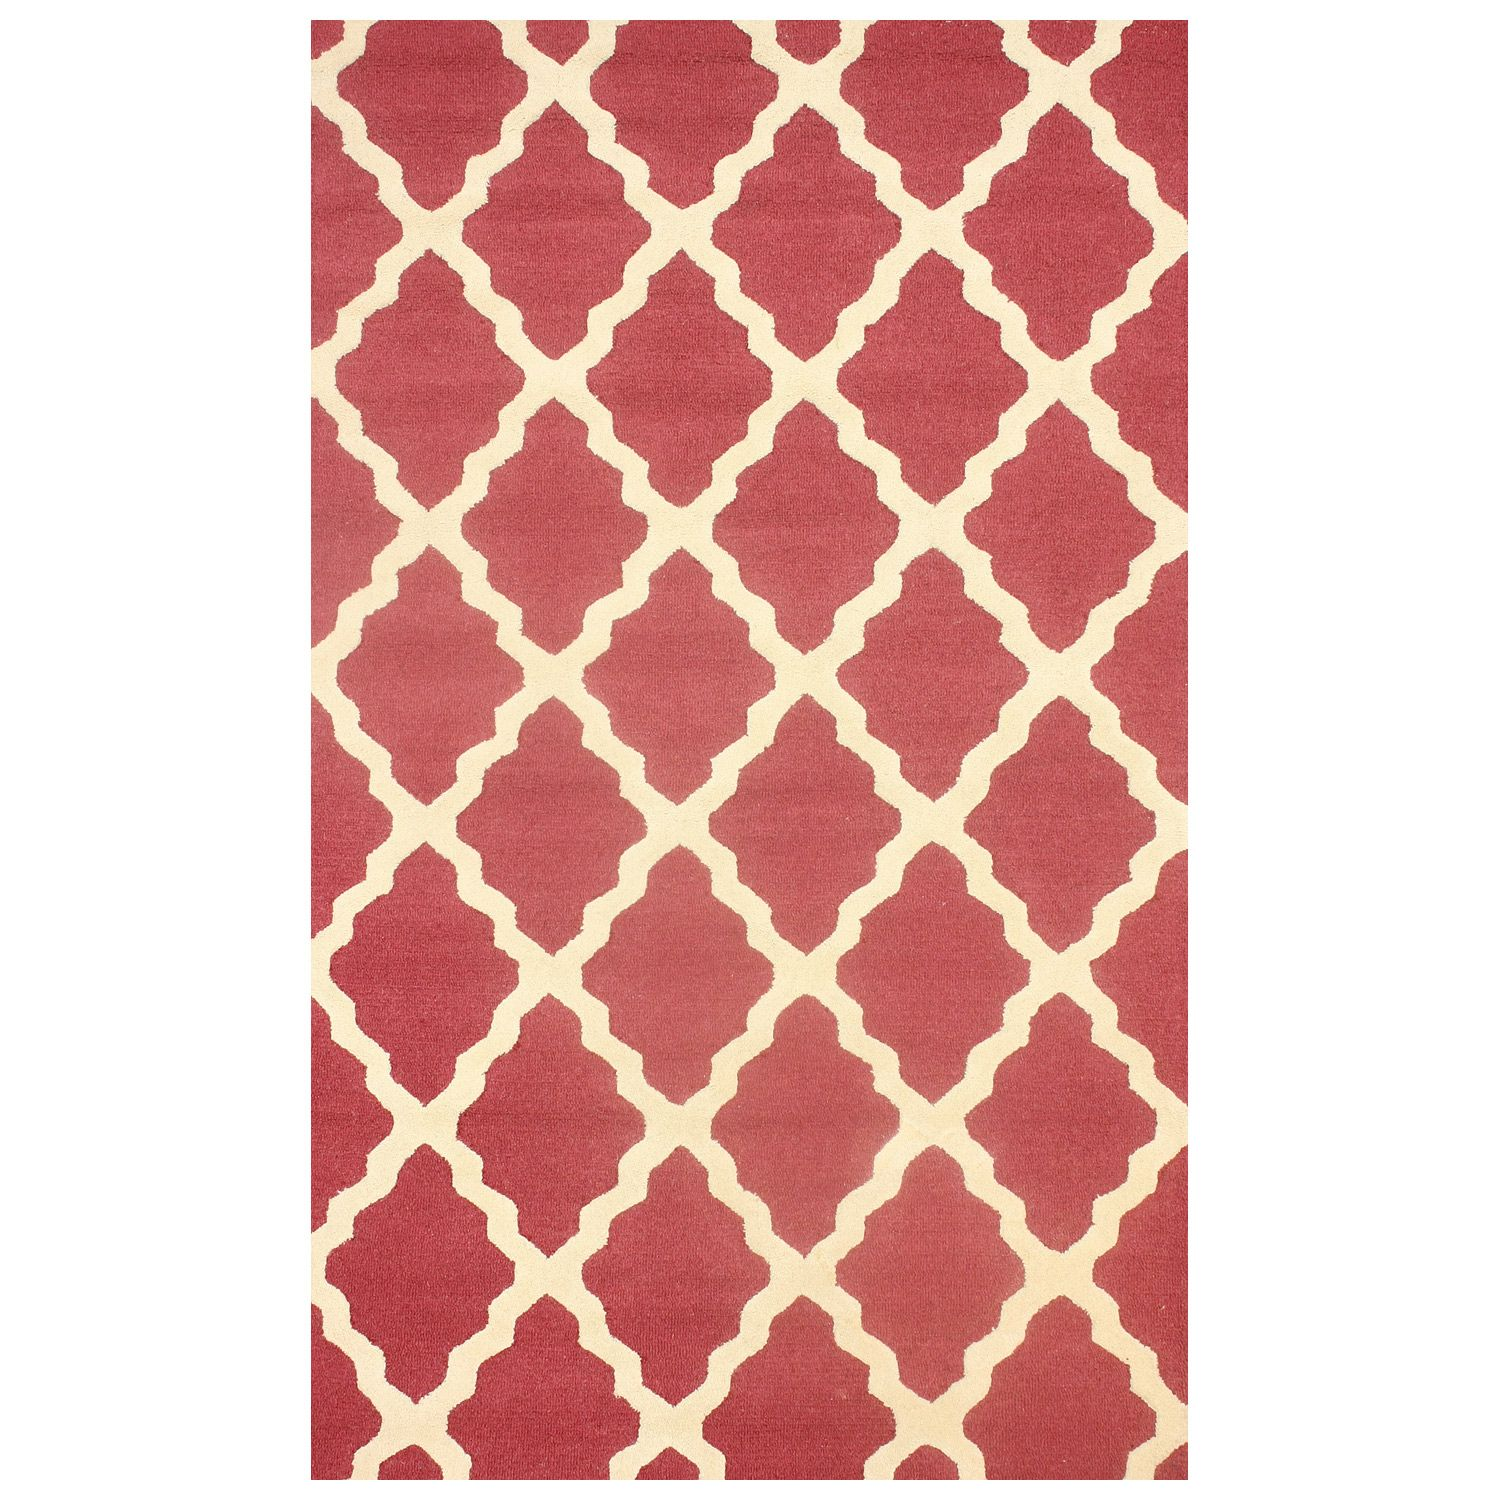 Berry Arbors: Marrakech Trellis Berry Hand Hooked Wool Rug (With Images